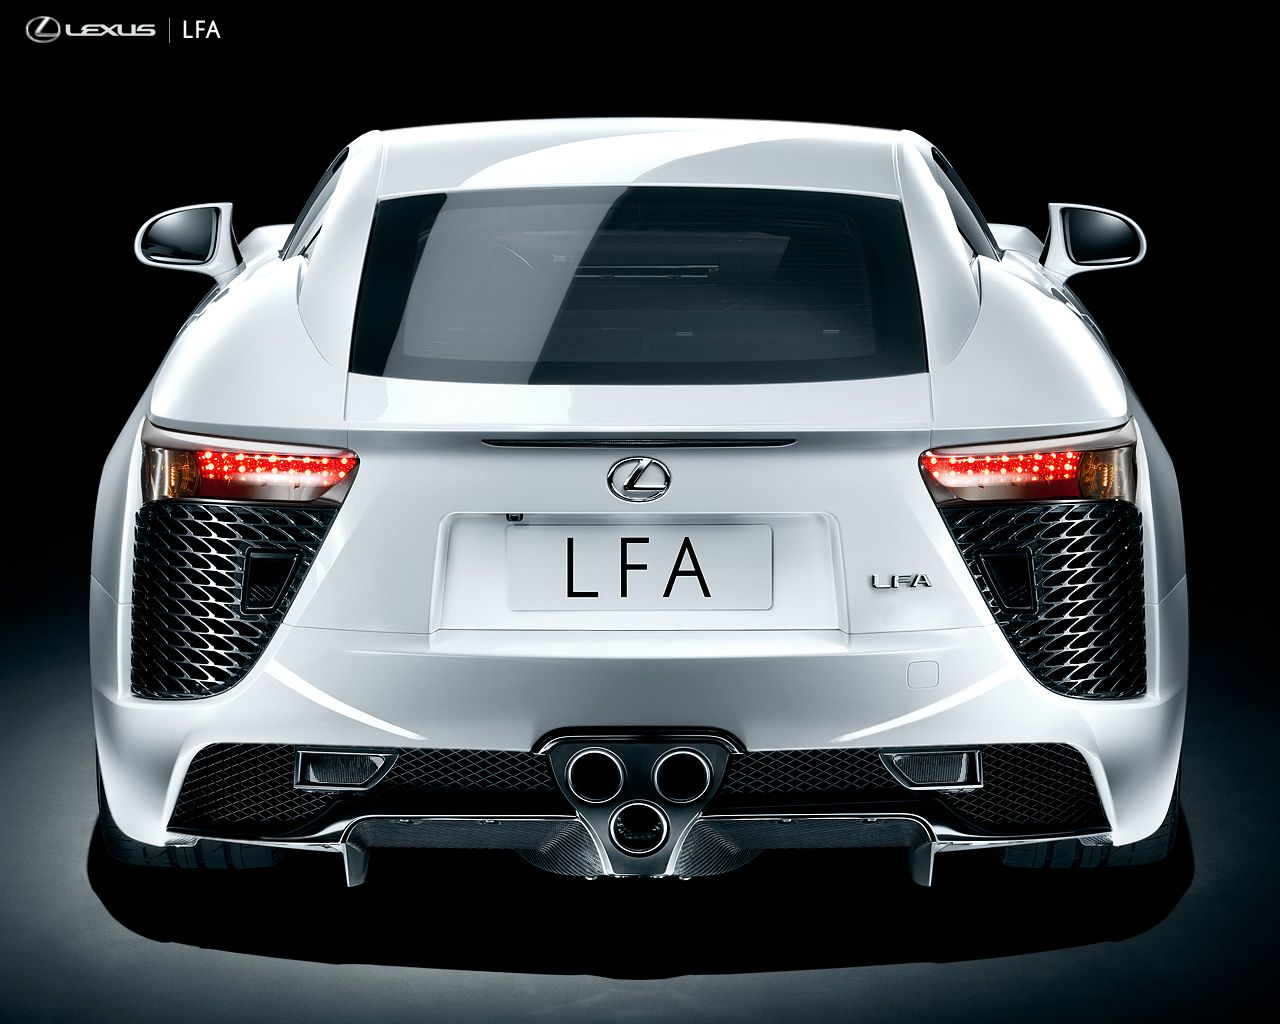 Lexus car wallpaper for PC Wallpaper